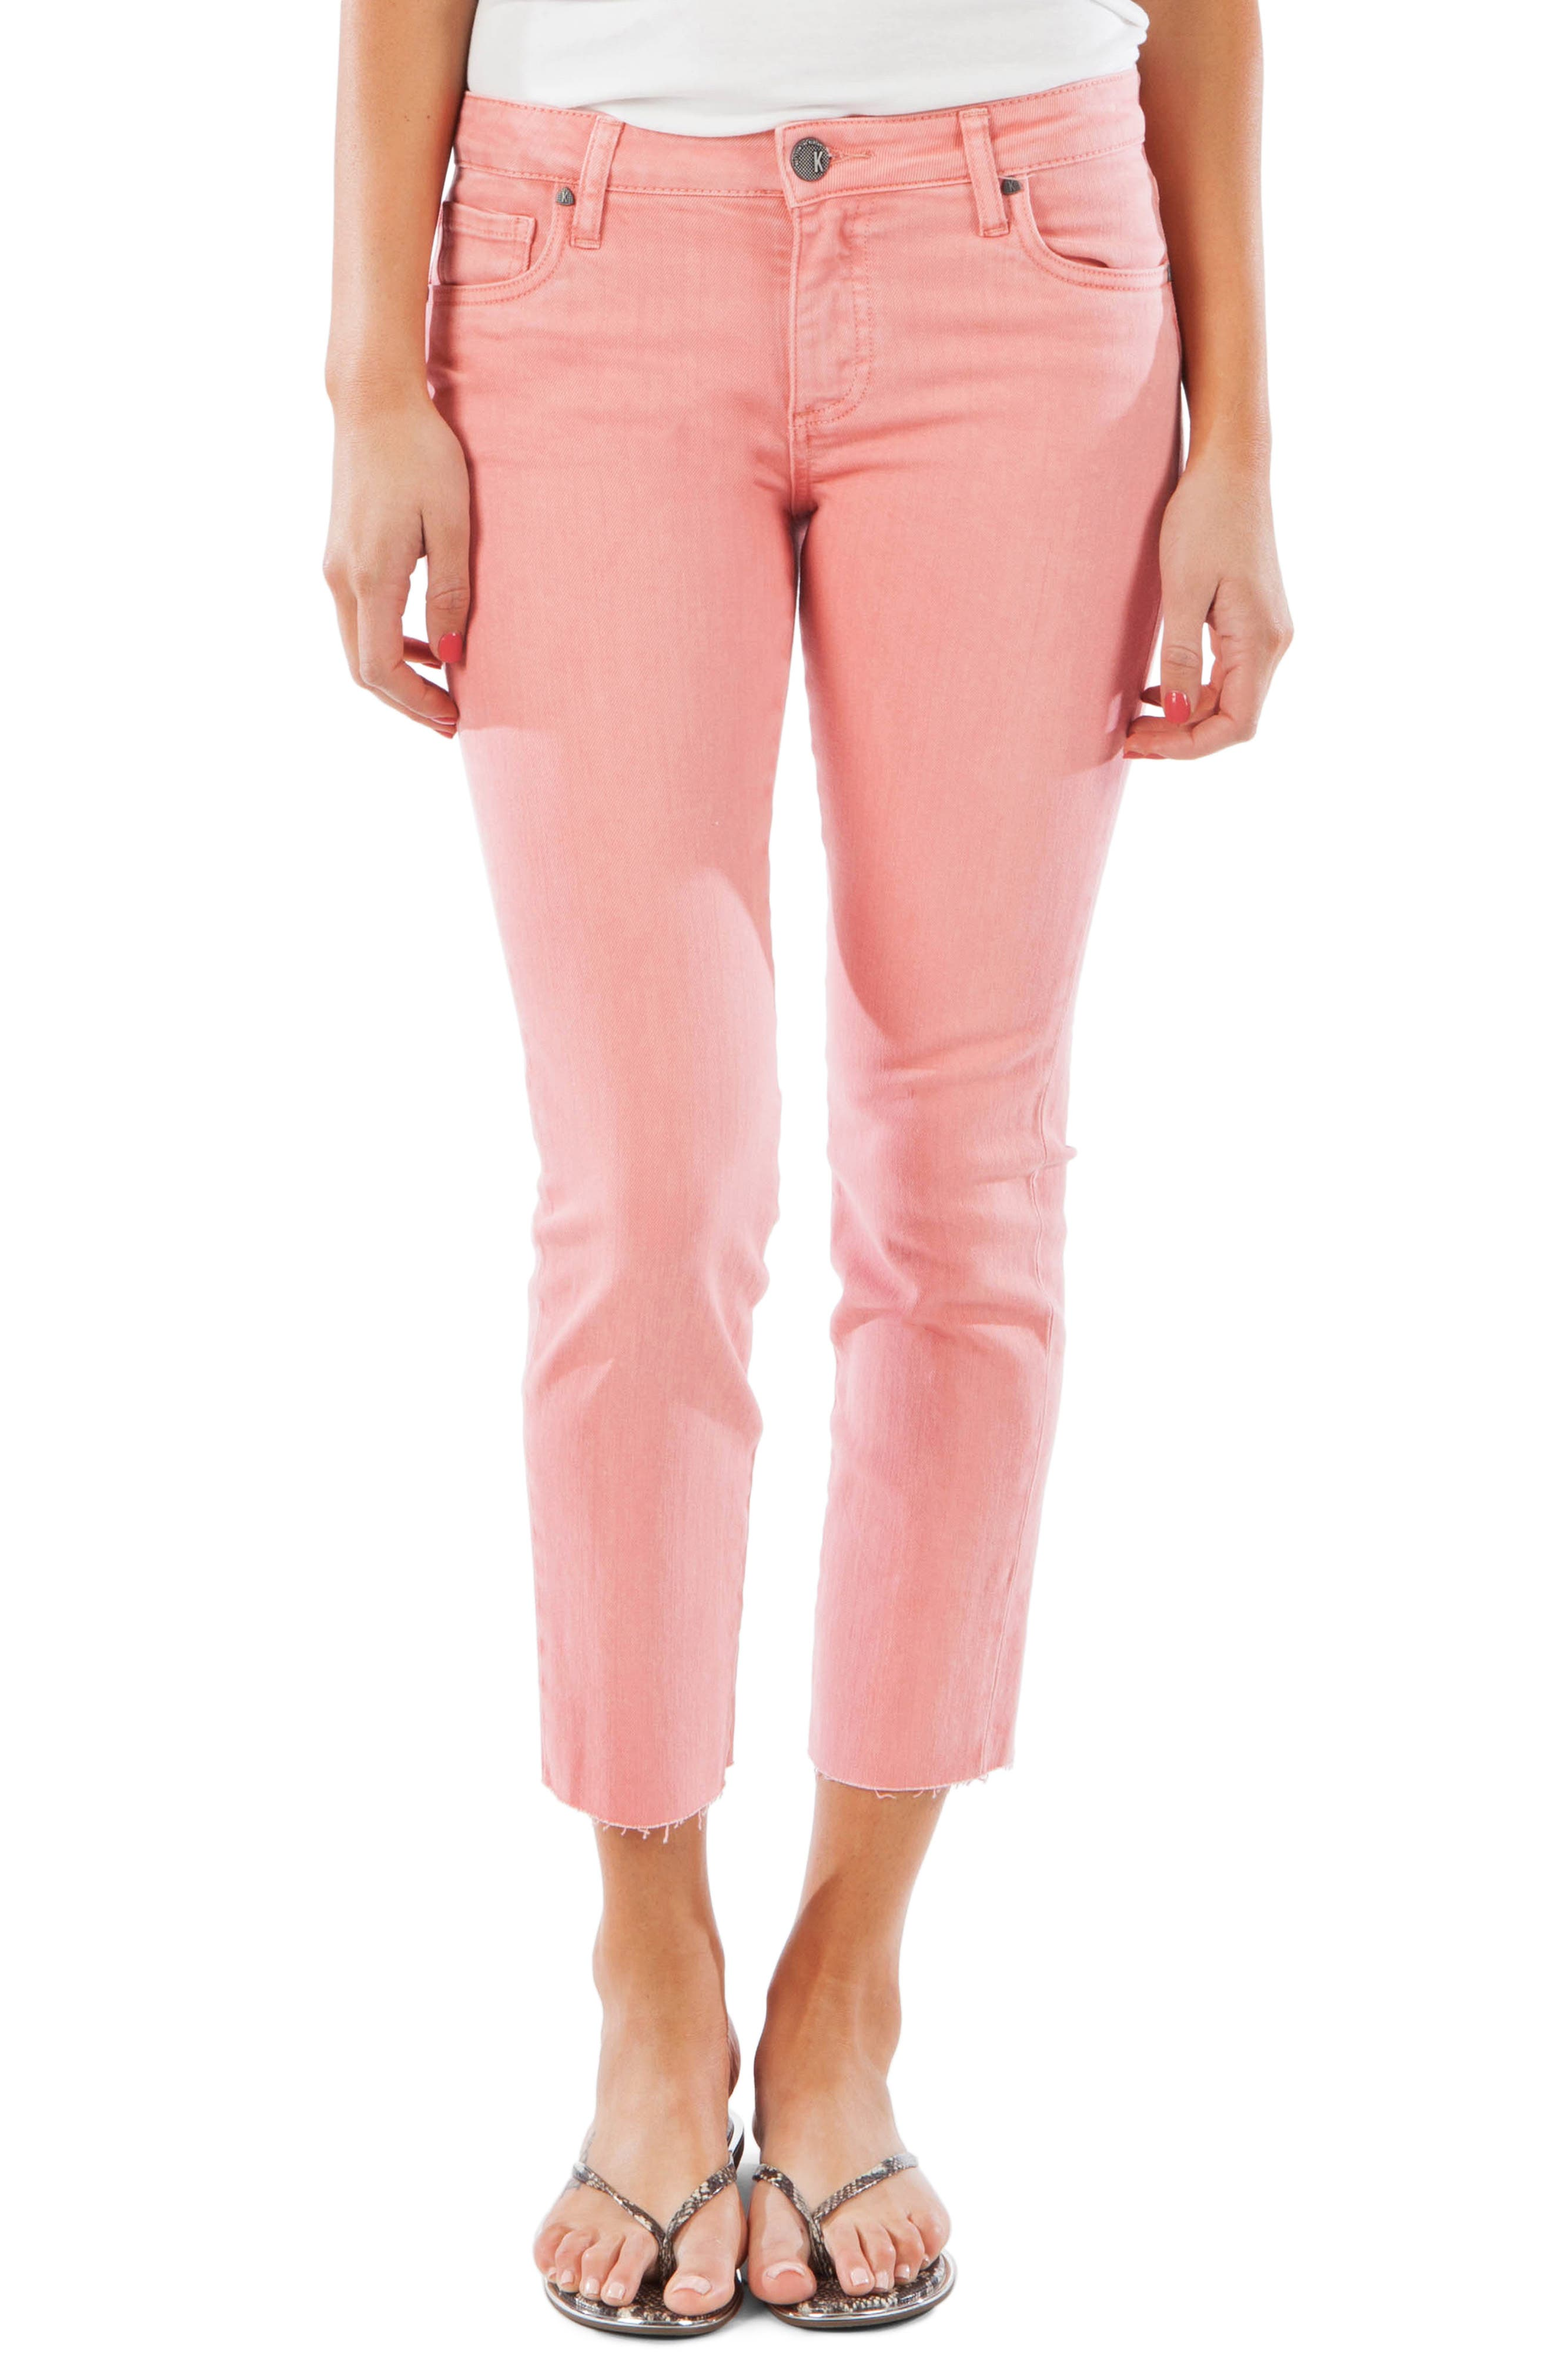 Kut From The Kloth Reese Raw Hem Ankle Straight Leg Jeans, Coral